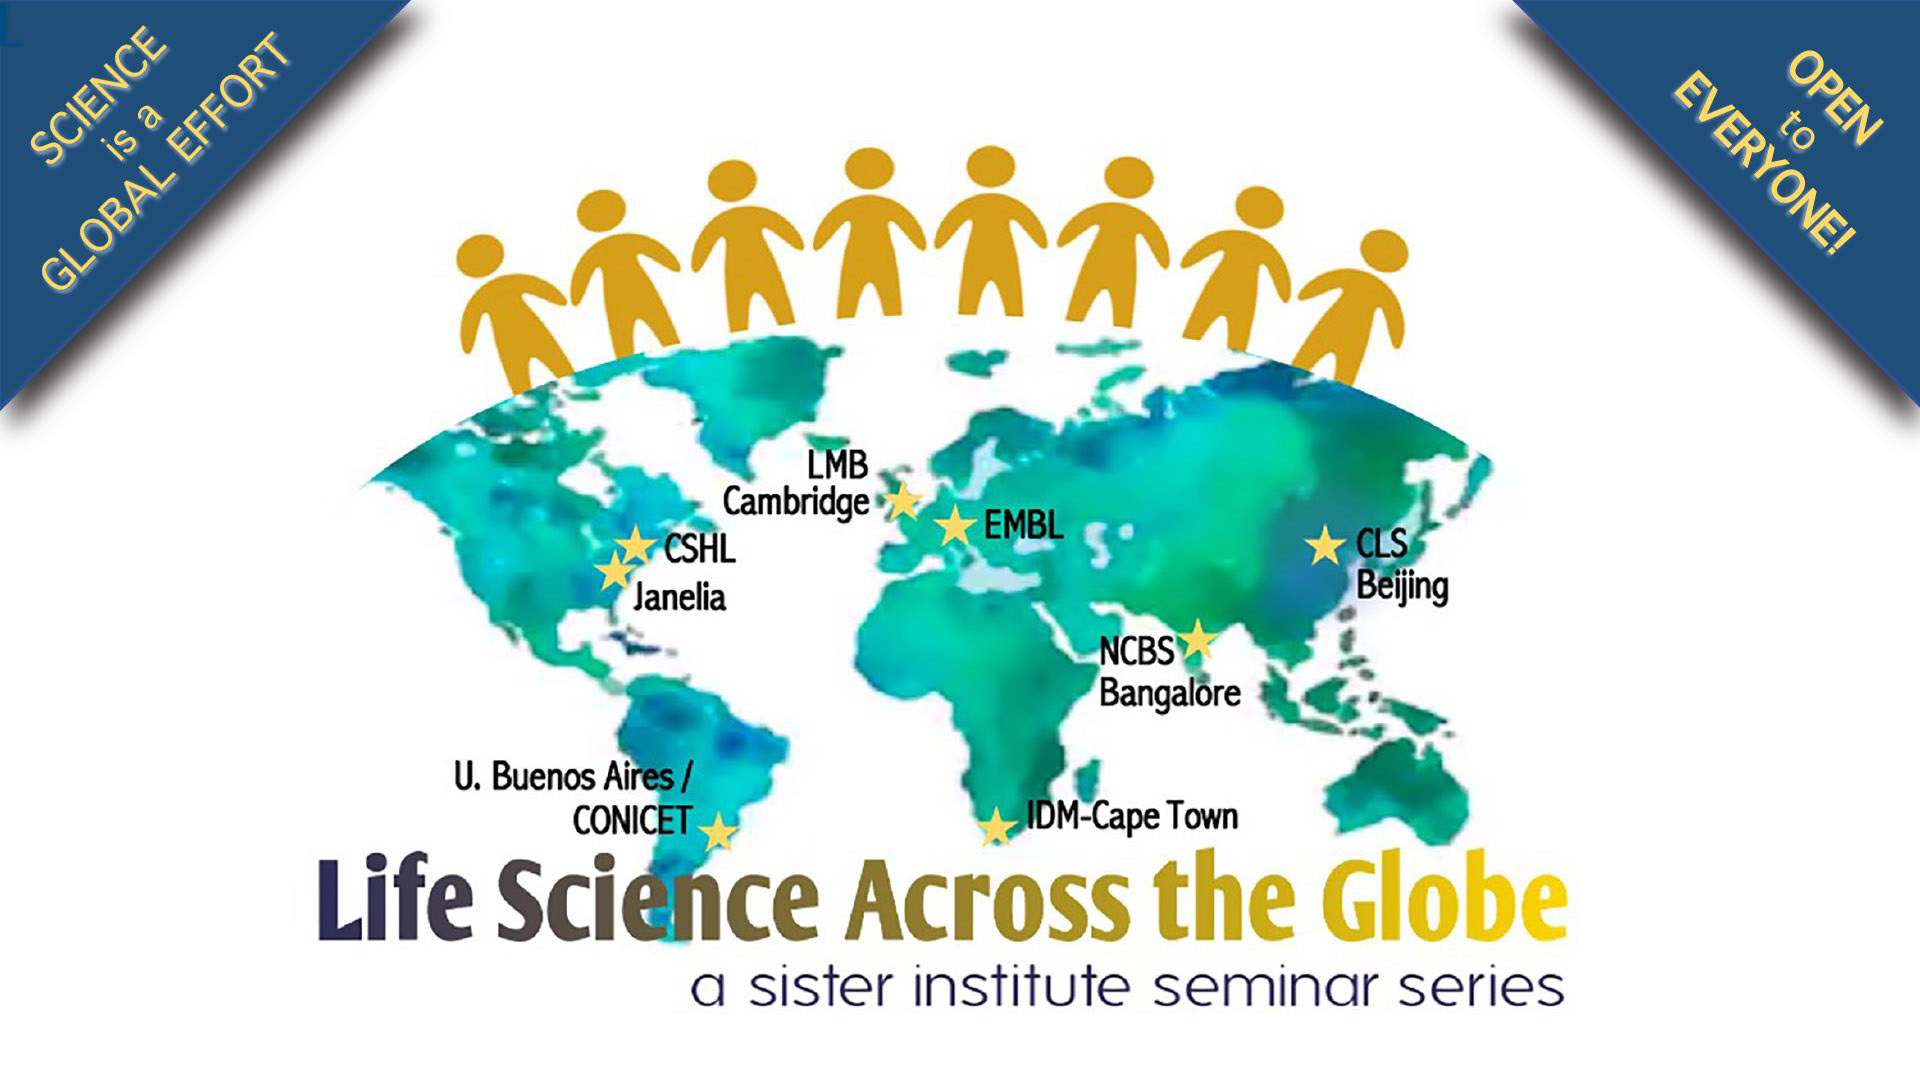 graphic of Life Sciences Across the Globe seminar